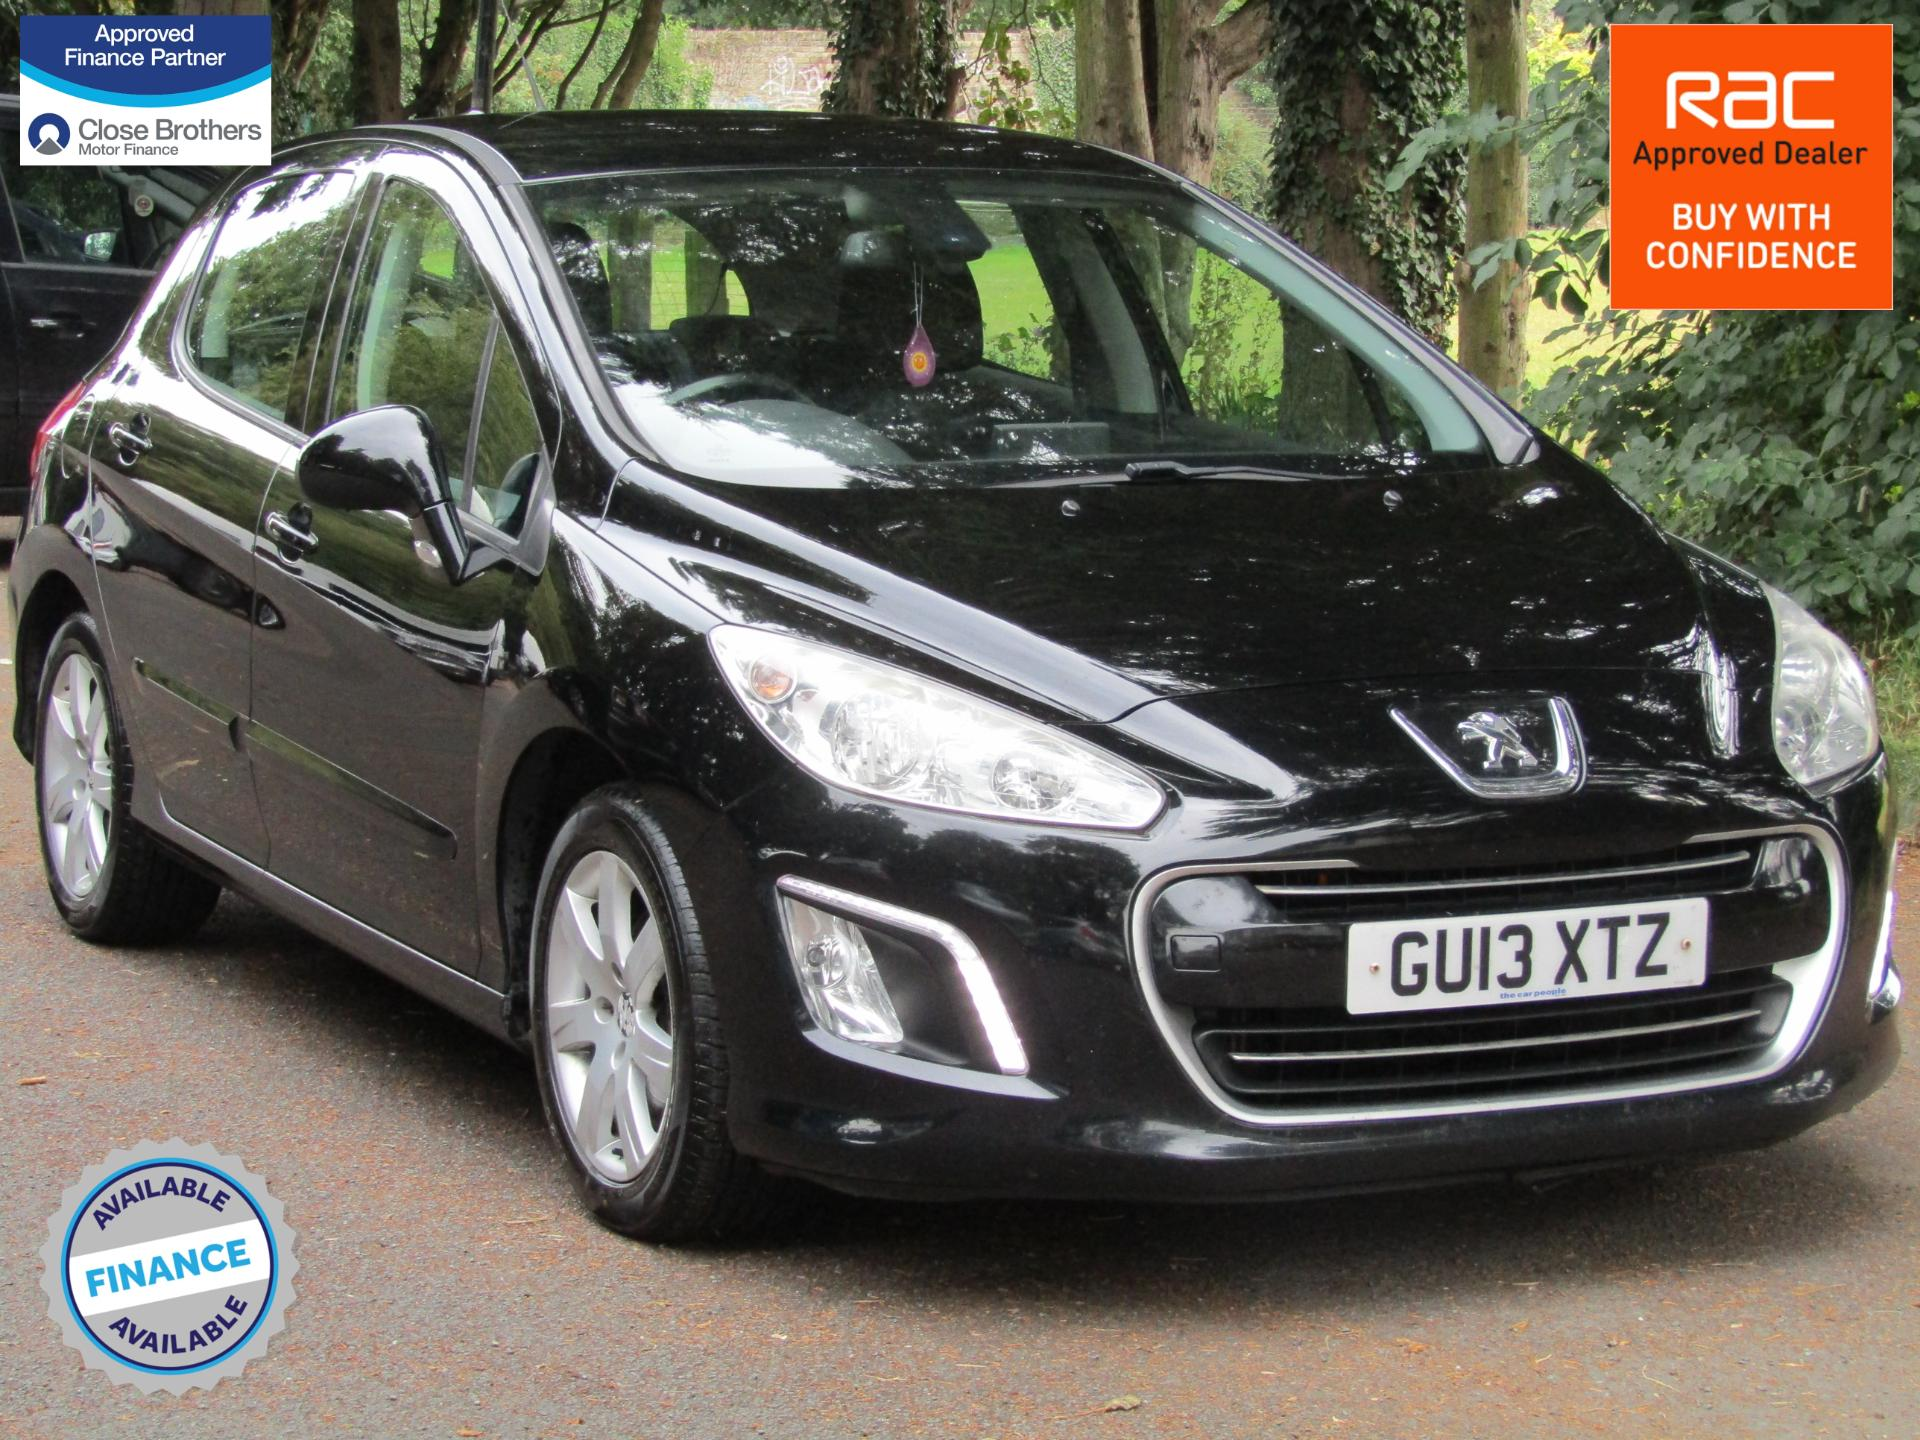 2013 (13) Peugeot 308 1.6 HDi 92 Active 5dr [Sat Nav] For Sale In Broadstairs, Kent